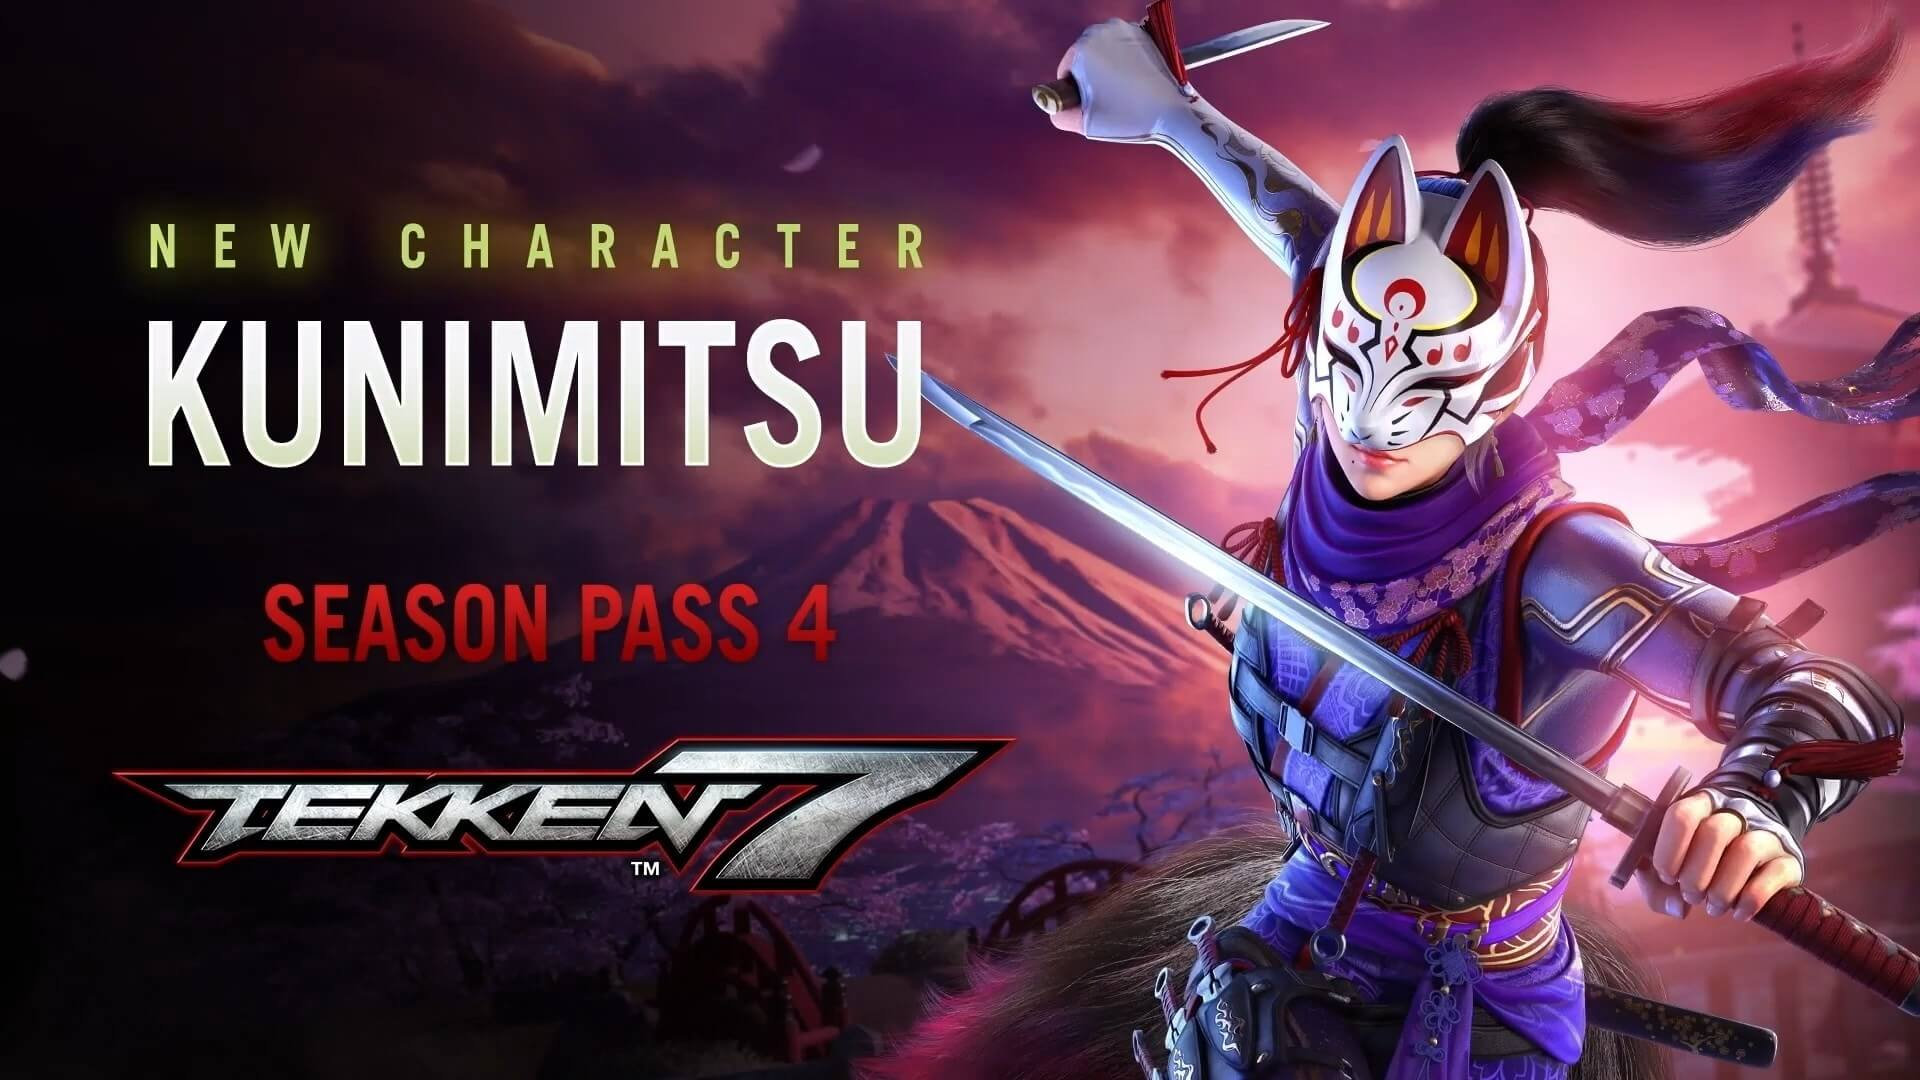 In Tekken 7 there were optimized 4 characters including Kunimitsu